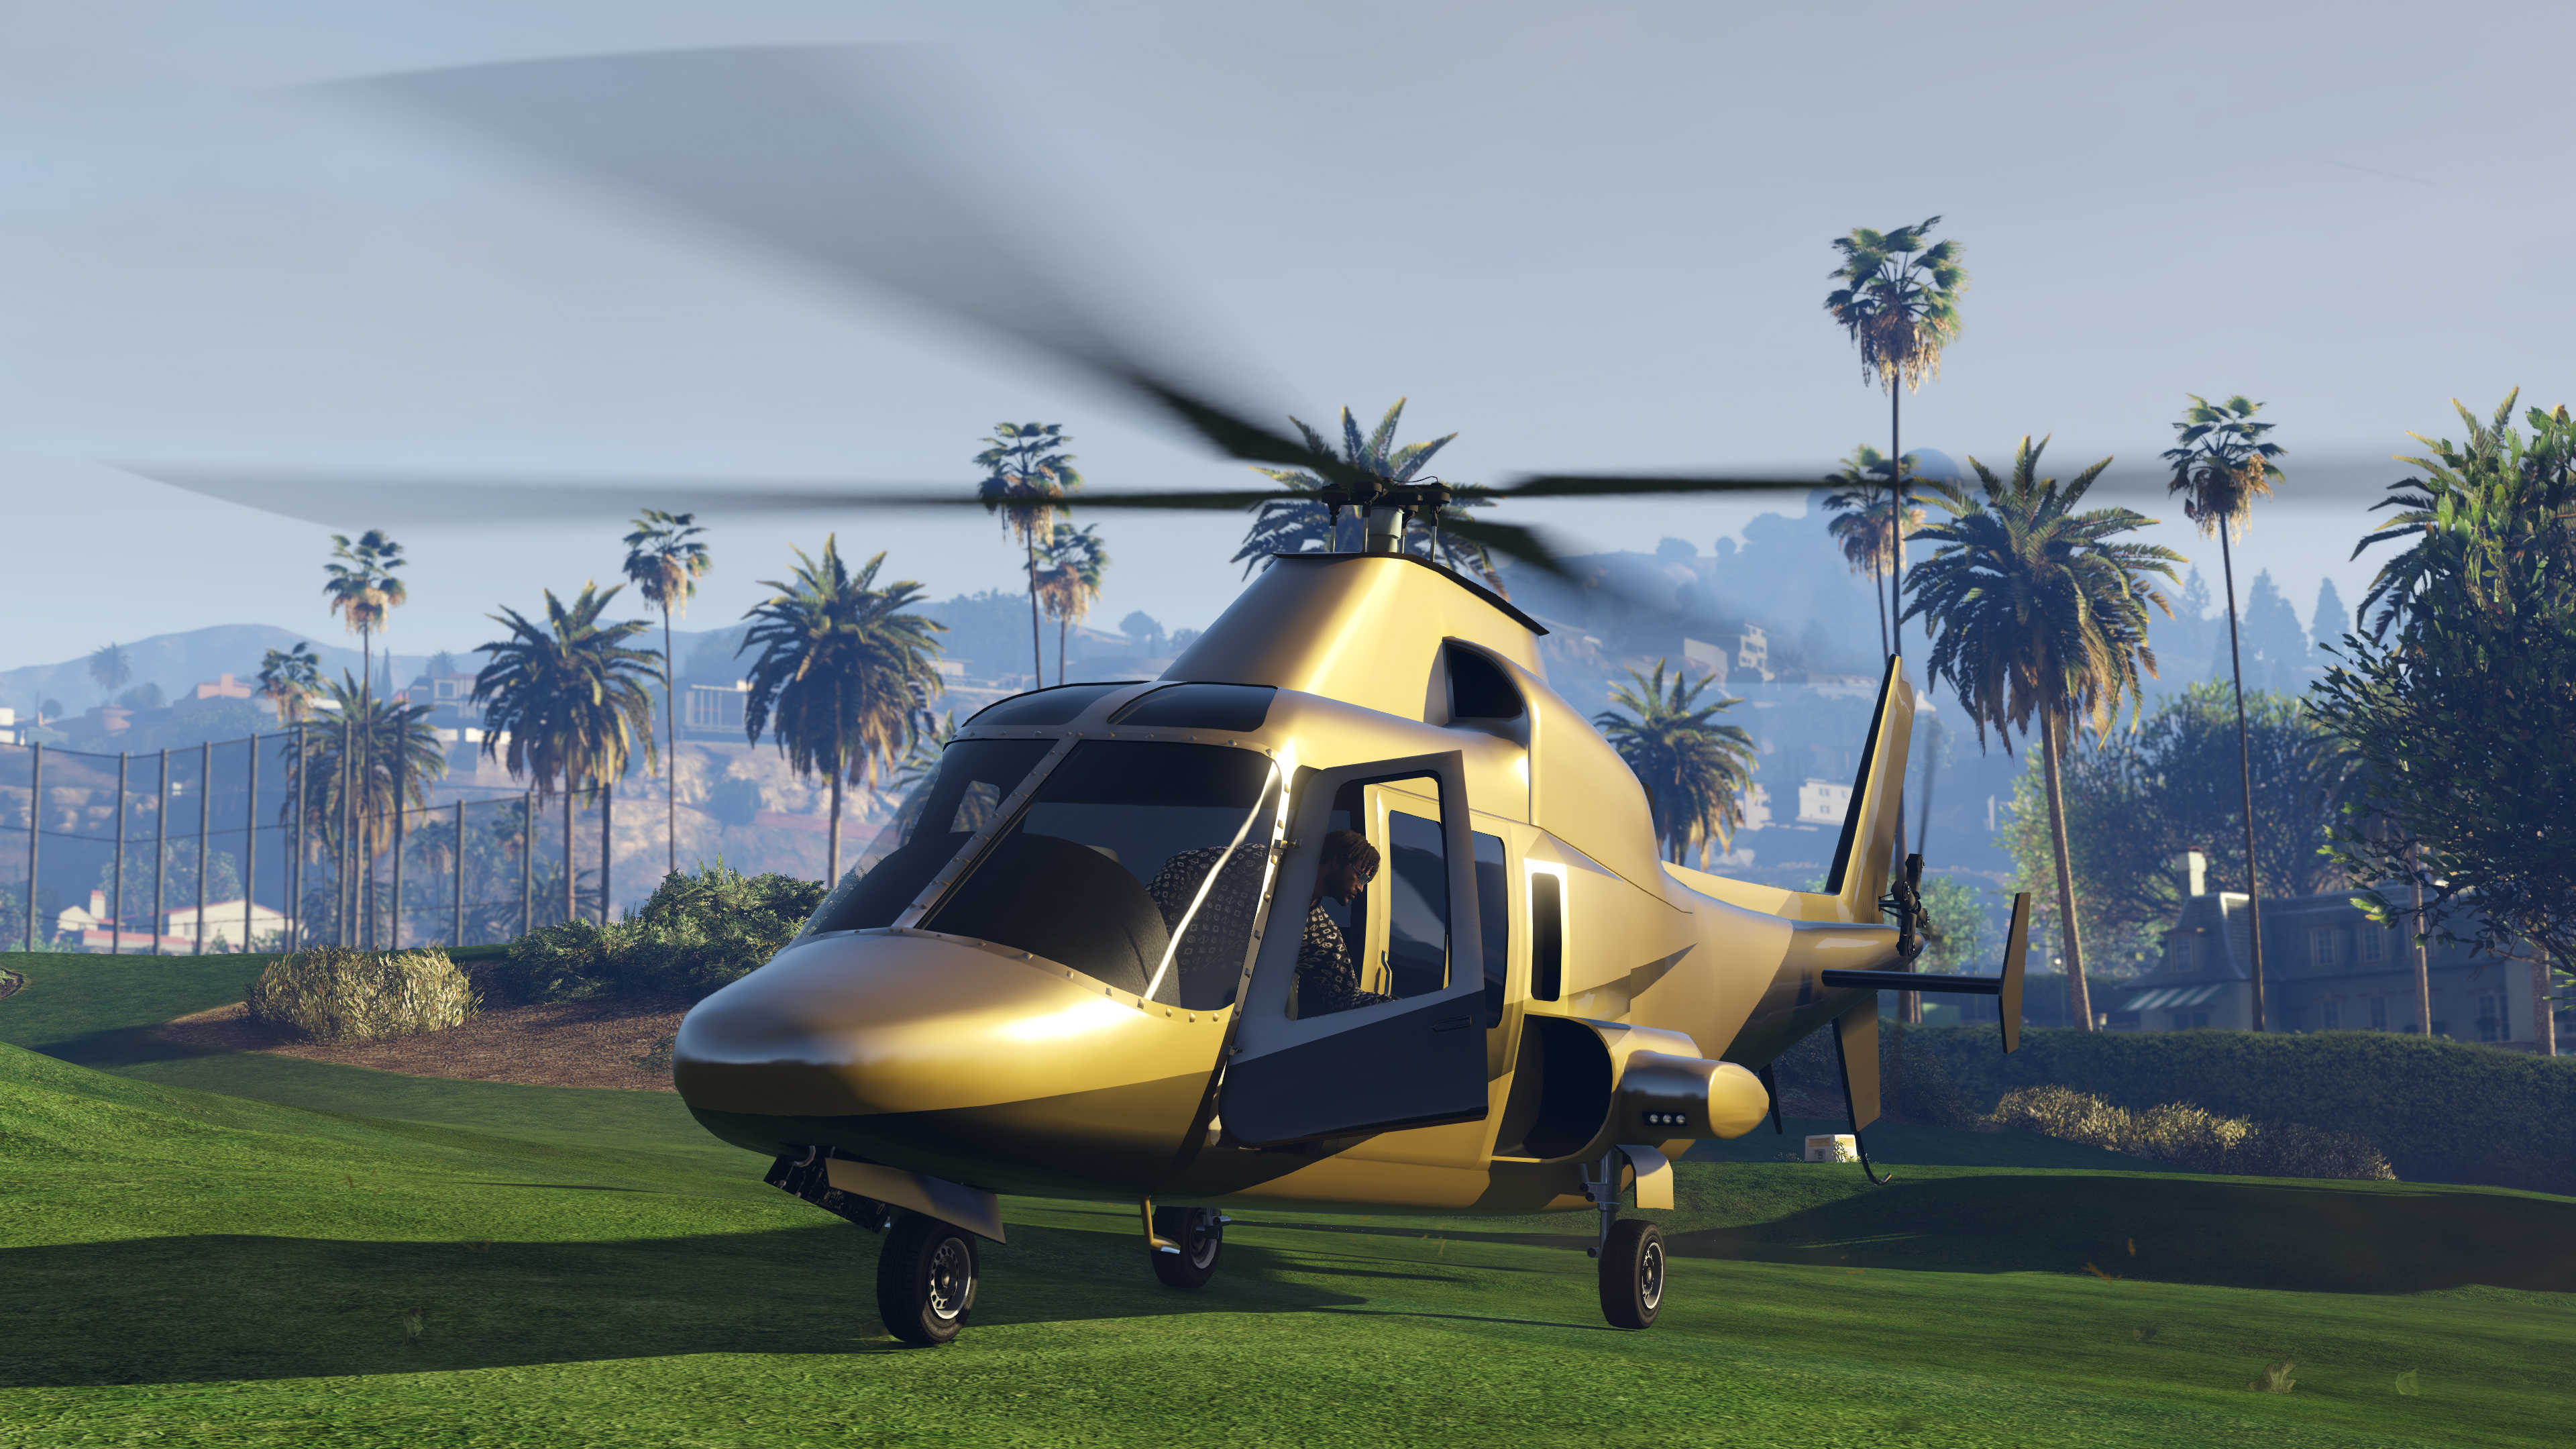 Prepare Your Wallet, Solid Gold Plane Coming to GTA Online Next Week 1